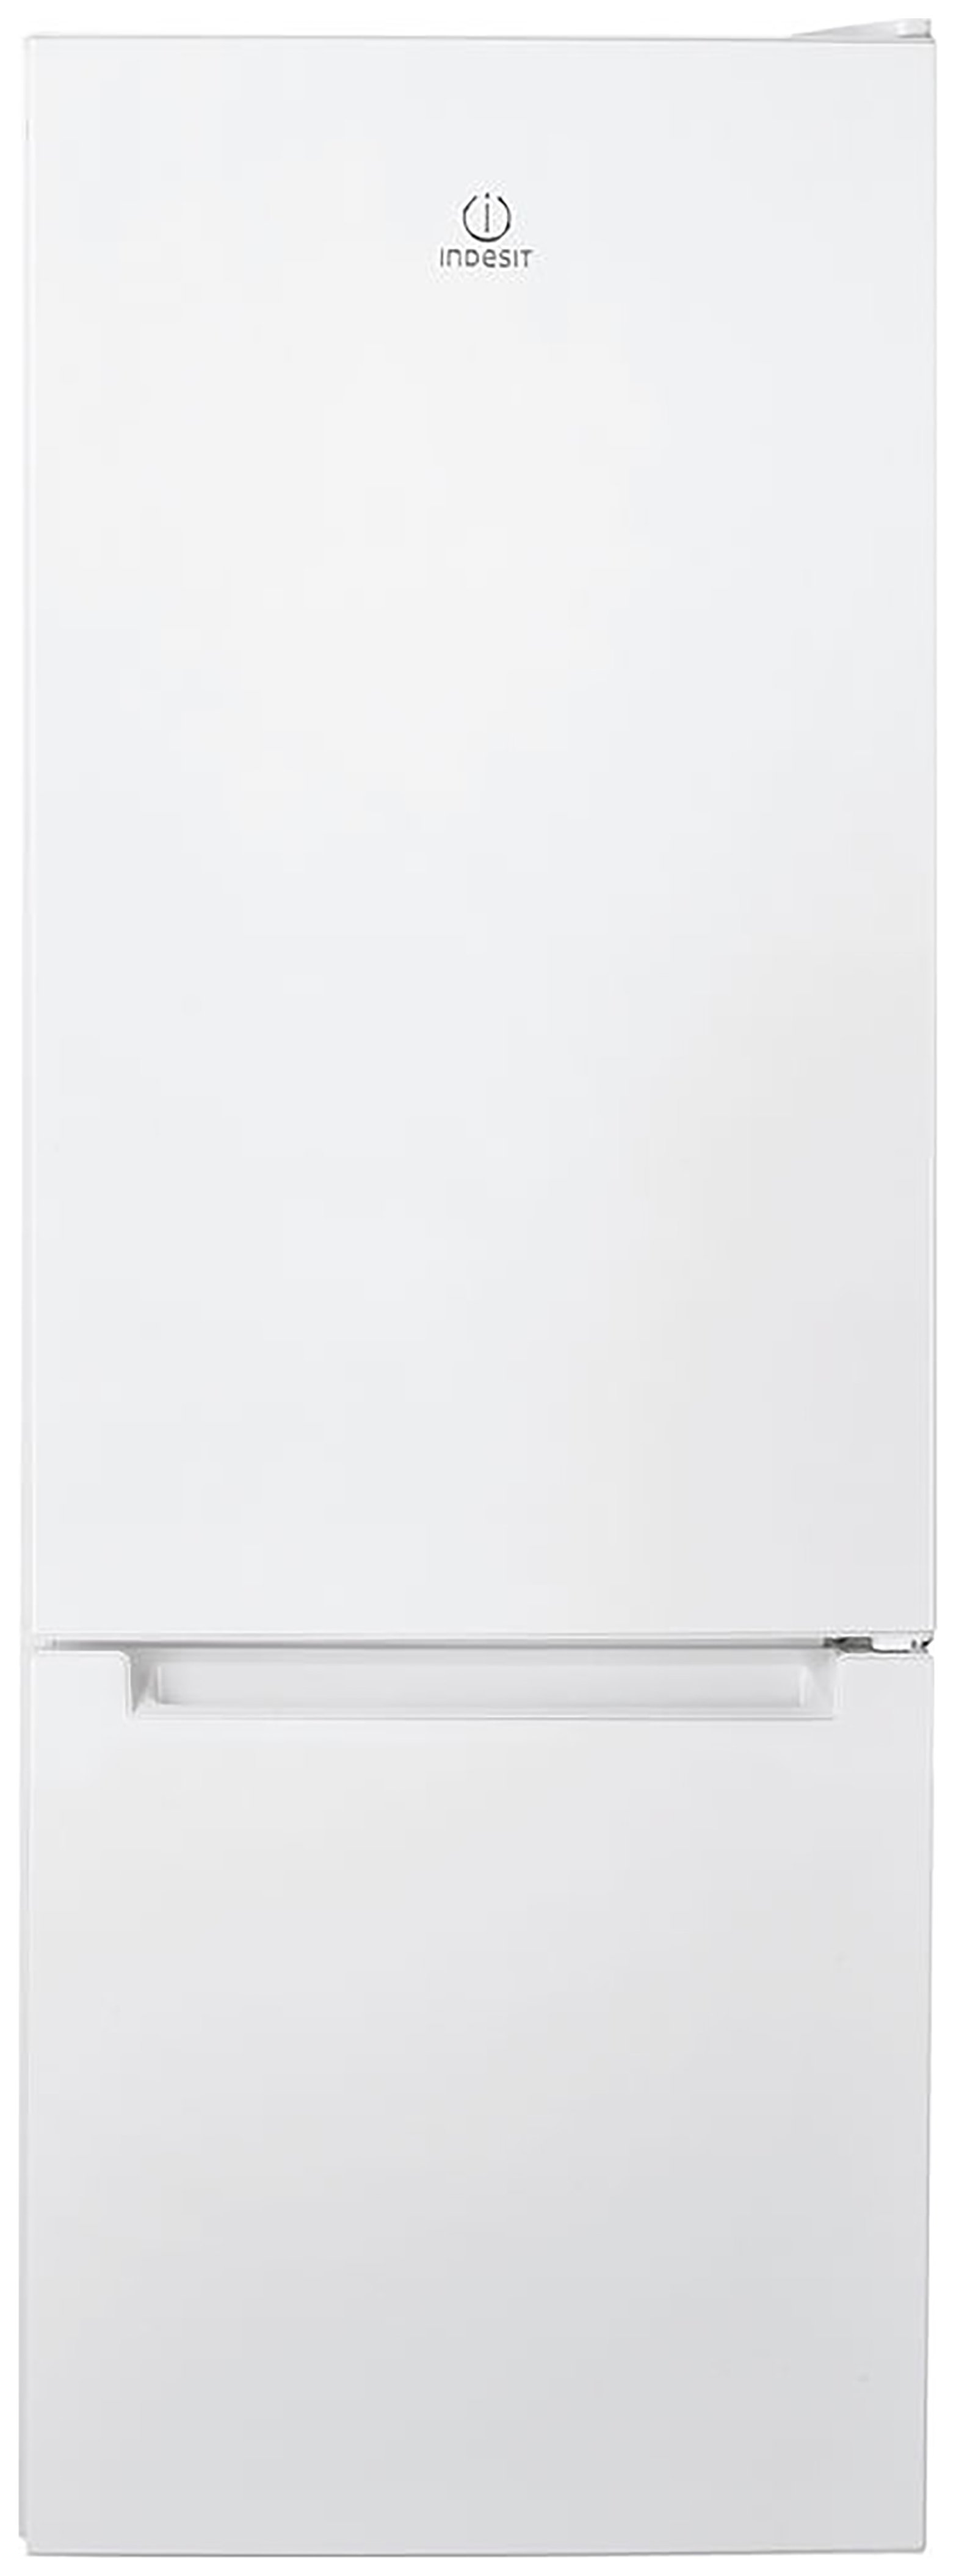 Indesit LR6S1W Fridge Freezer - White